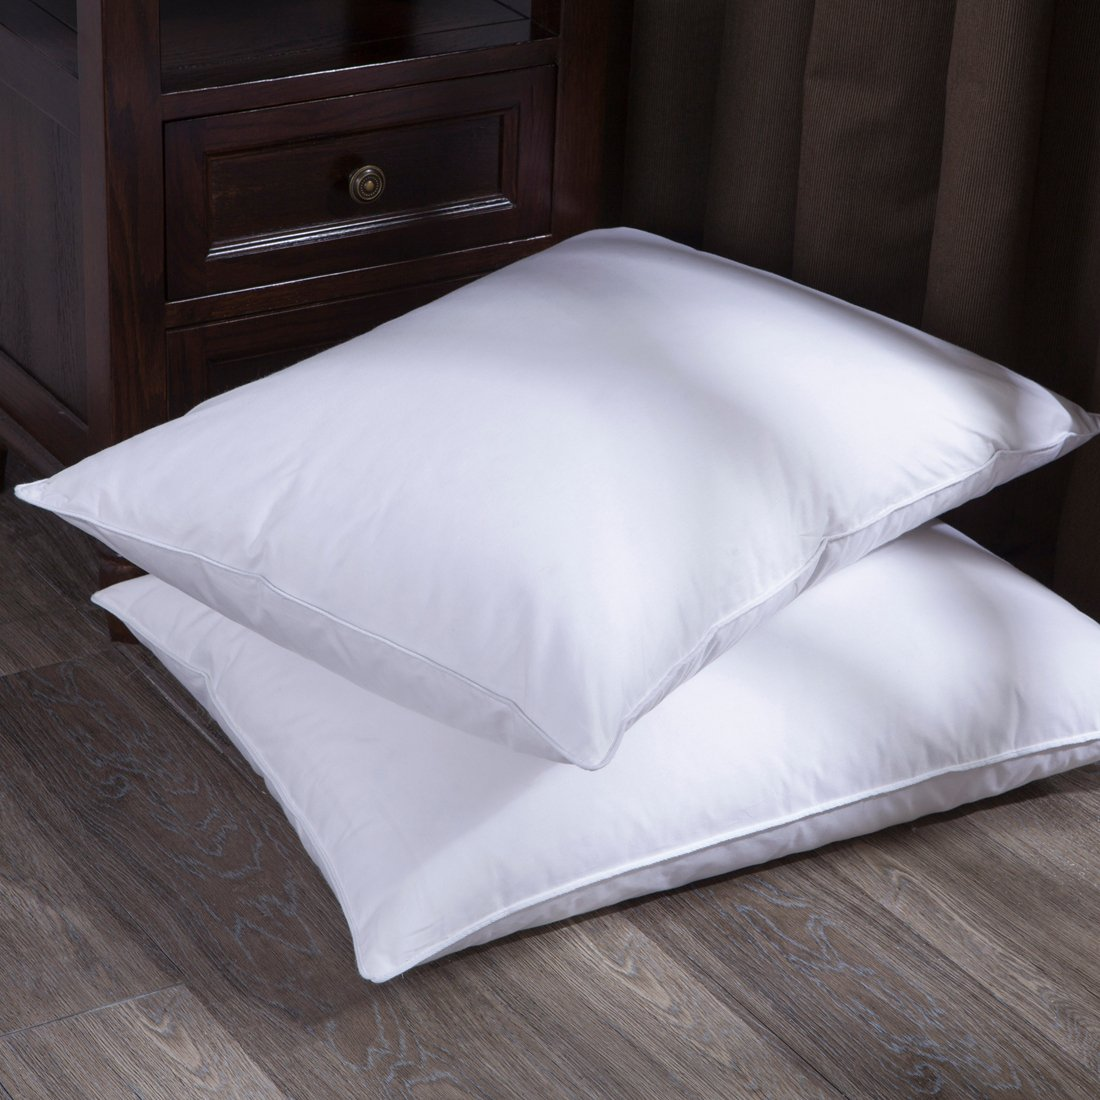 sleeping of pillow white set pillows bed rty for puredown down feather thread count cotton size fabric qwe king